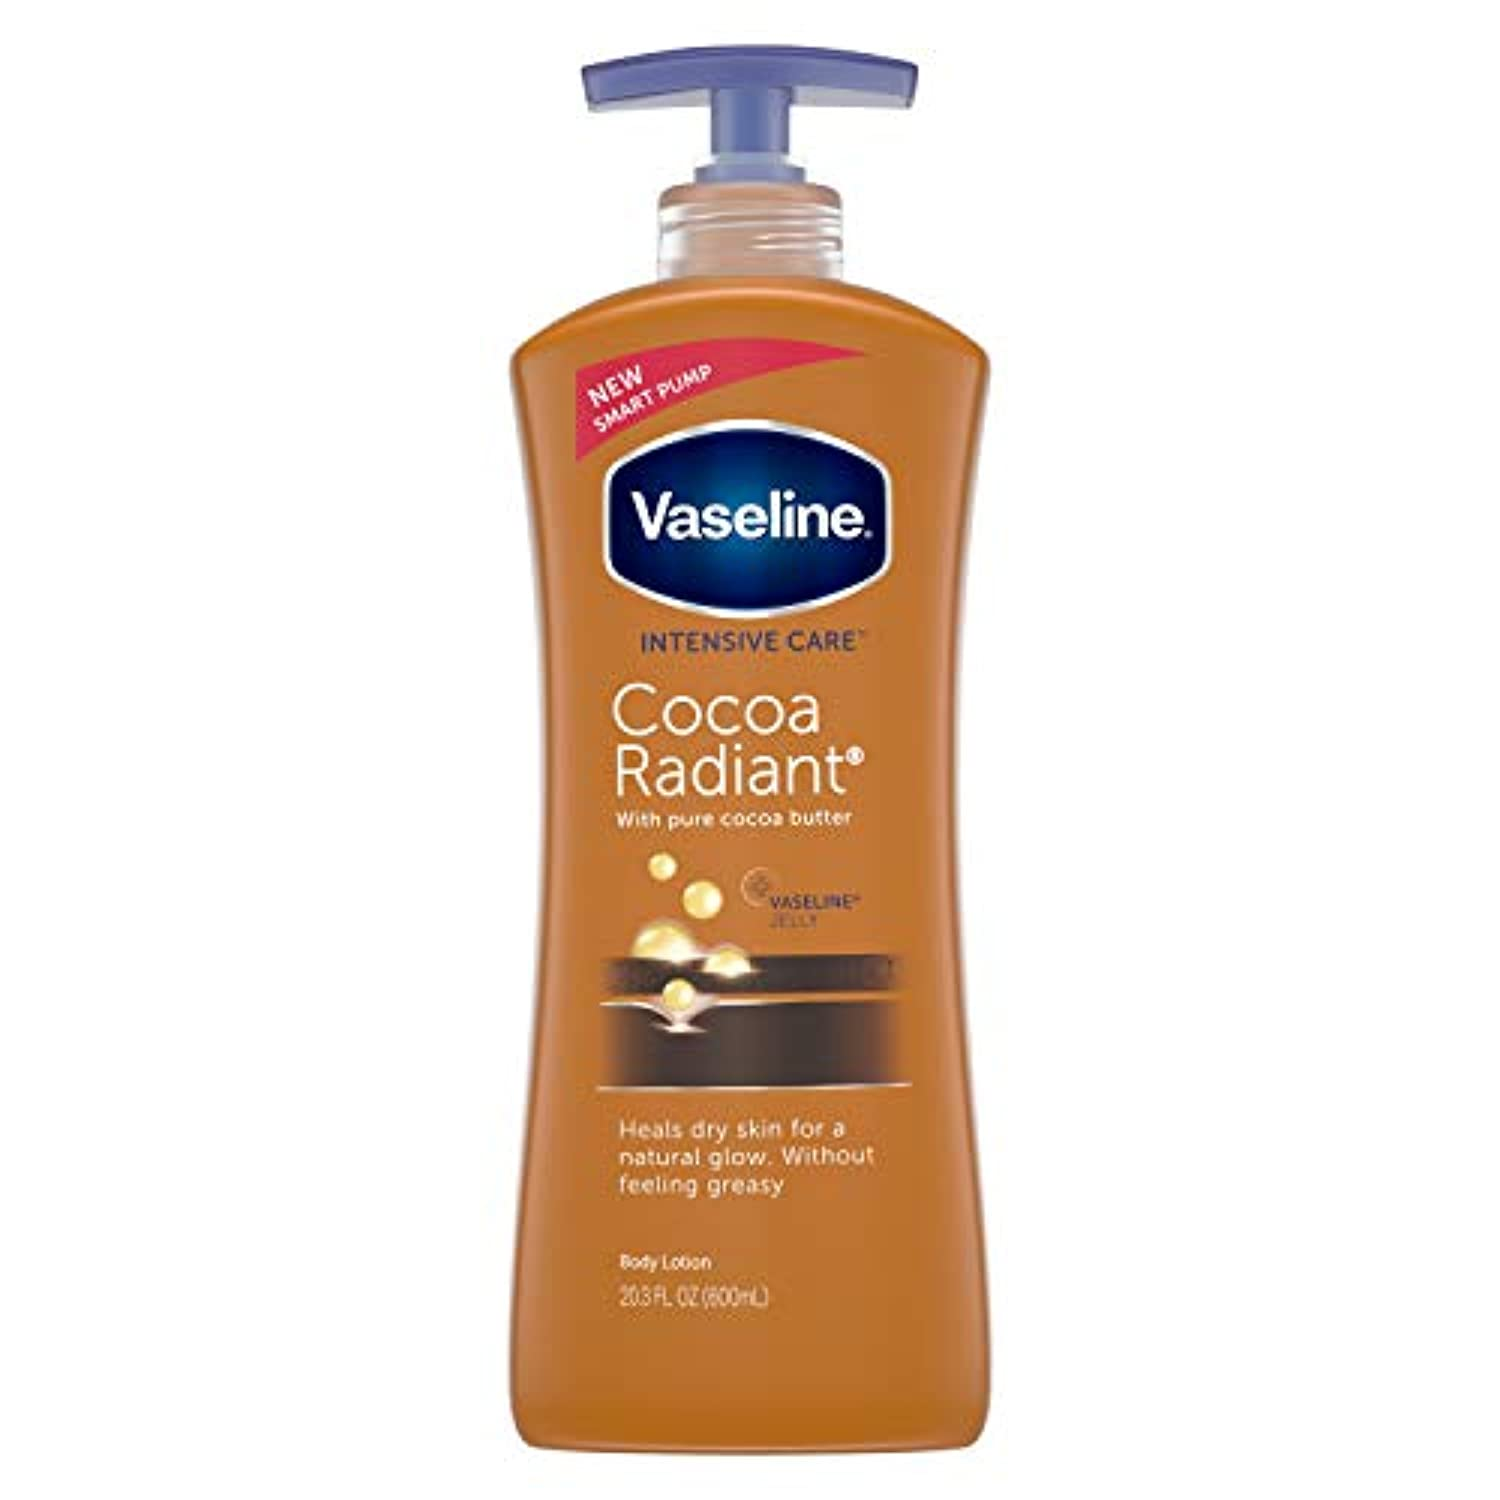 Classier: Buy Vaseline Vaseline Intensive Care hand and body lotion Cocoa Radiant 20.3 oz